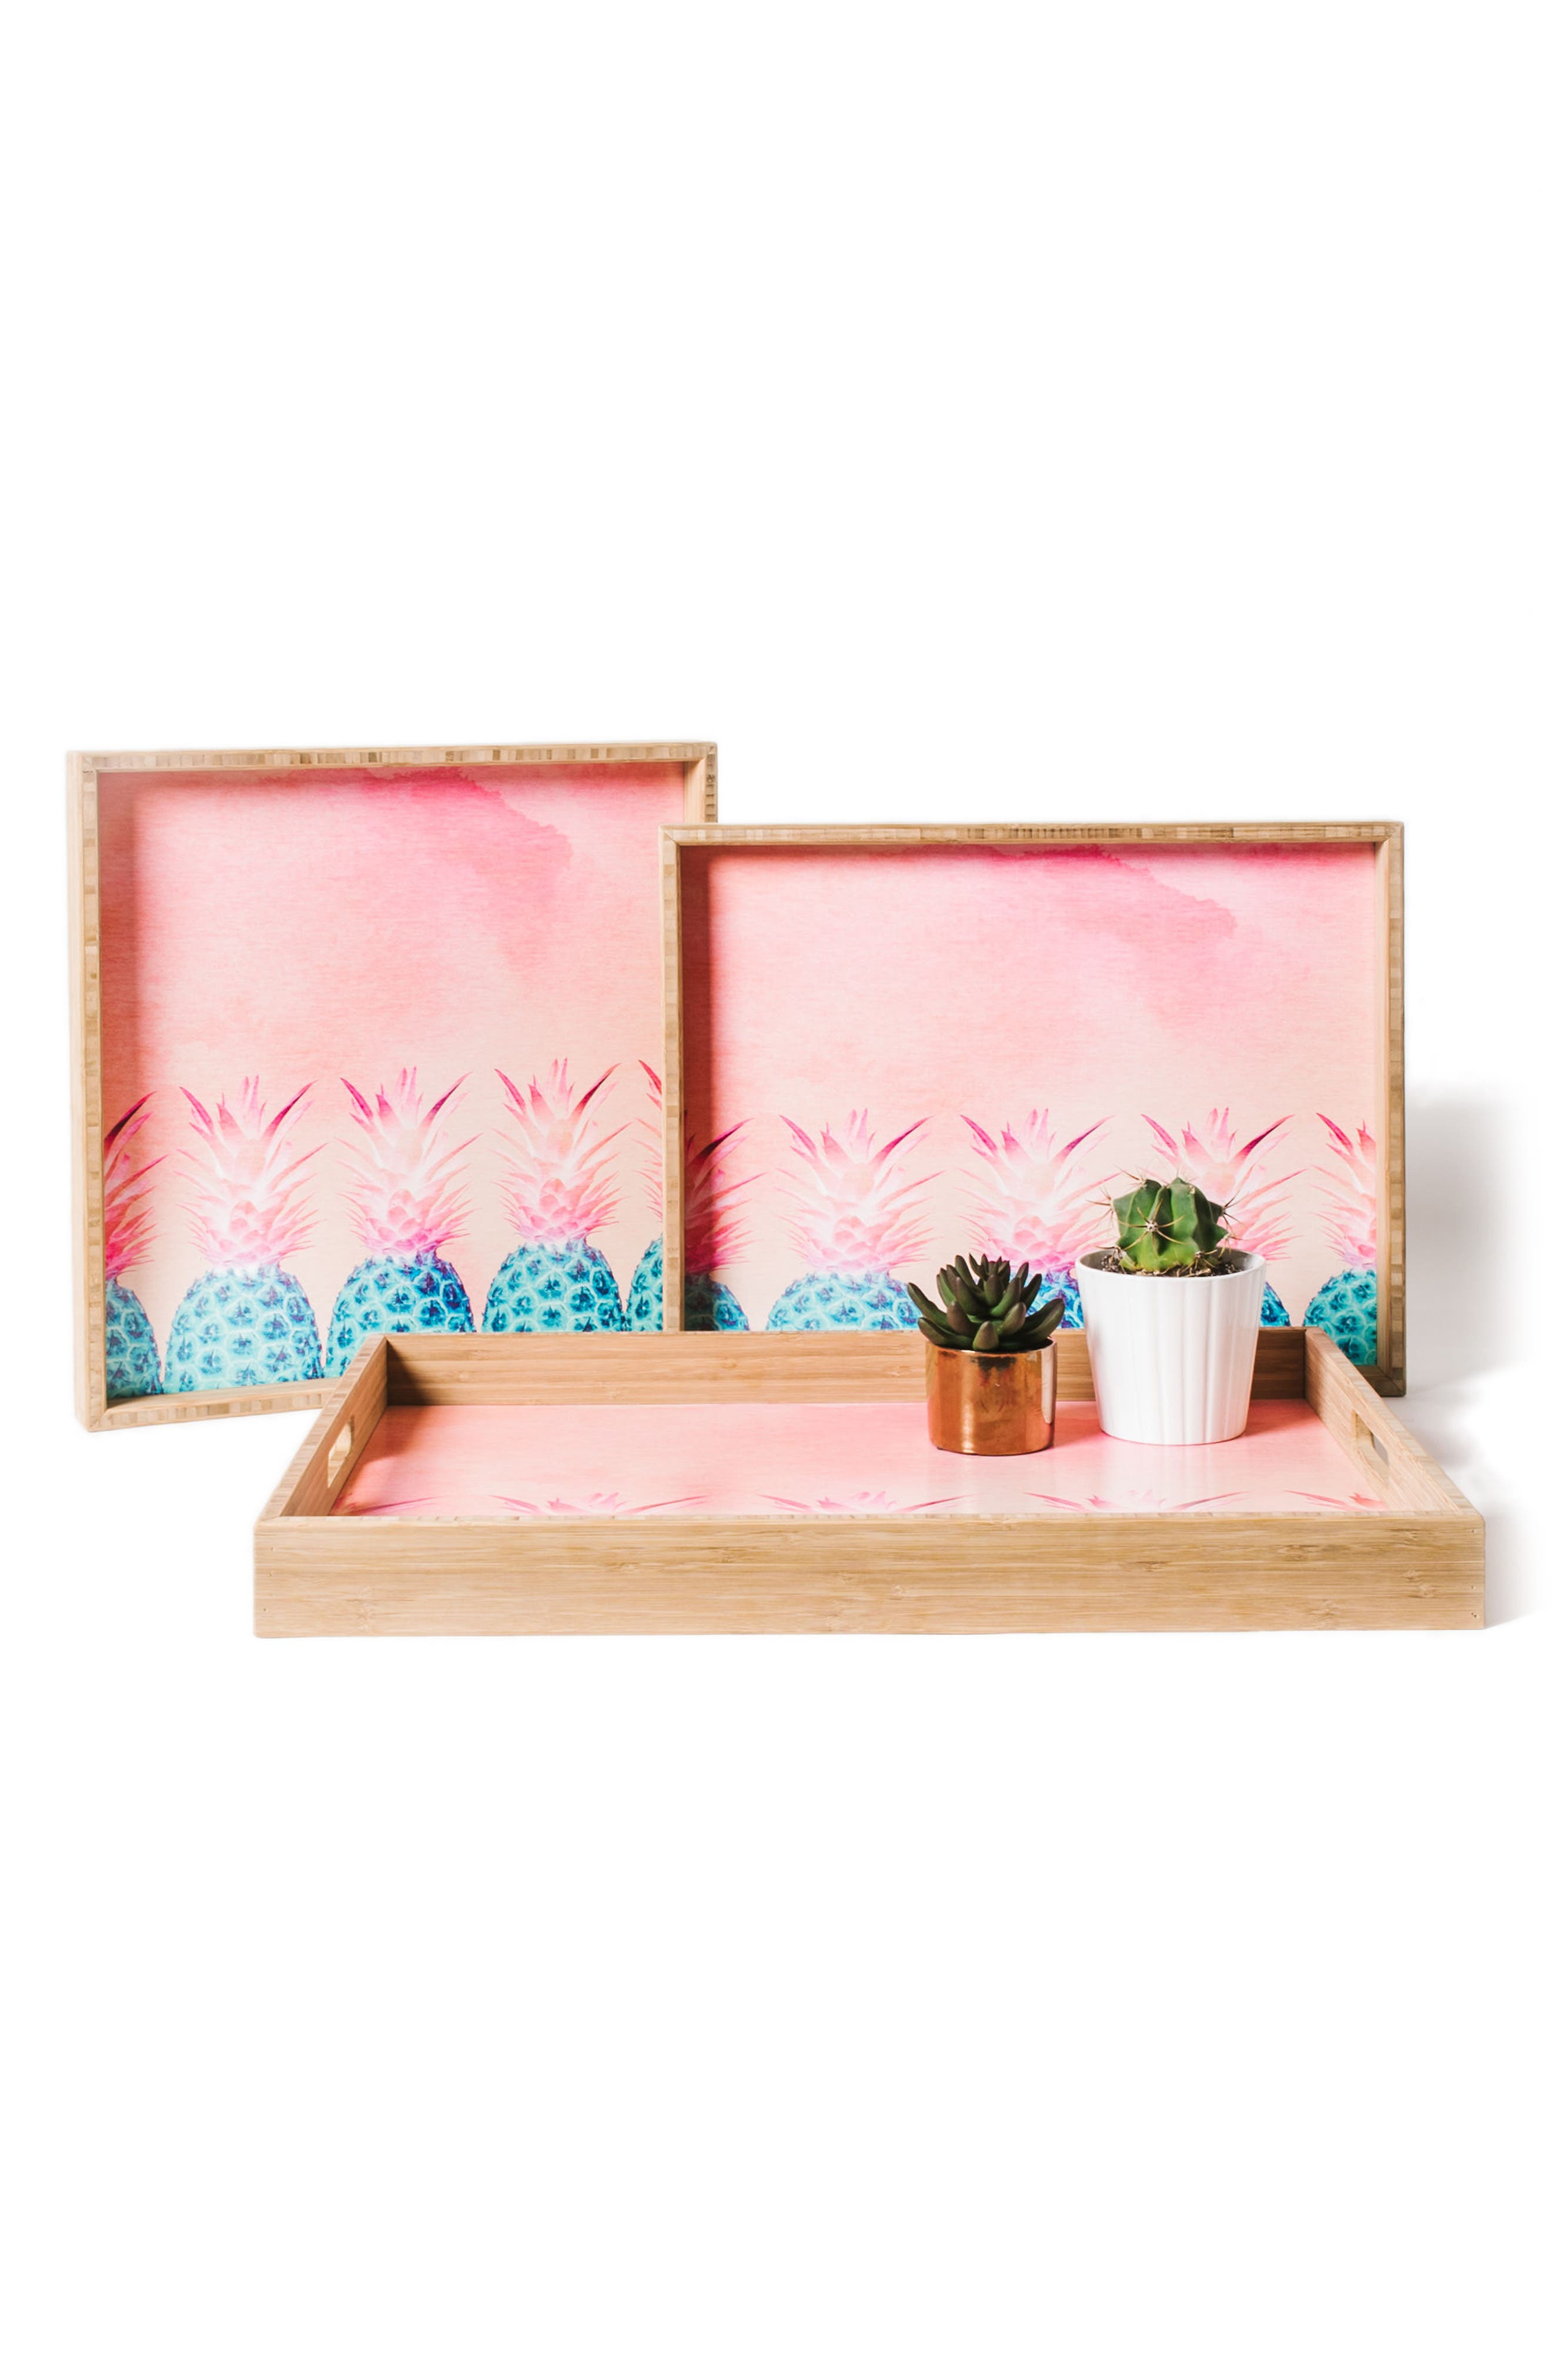 Pineapple Farm Serving Tray,                             Alternate thumbnail 2, color,                             Pink